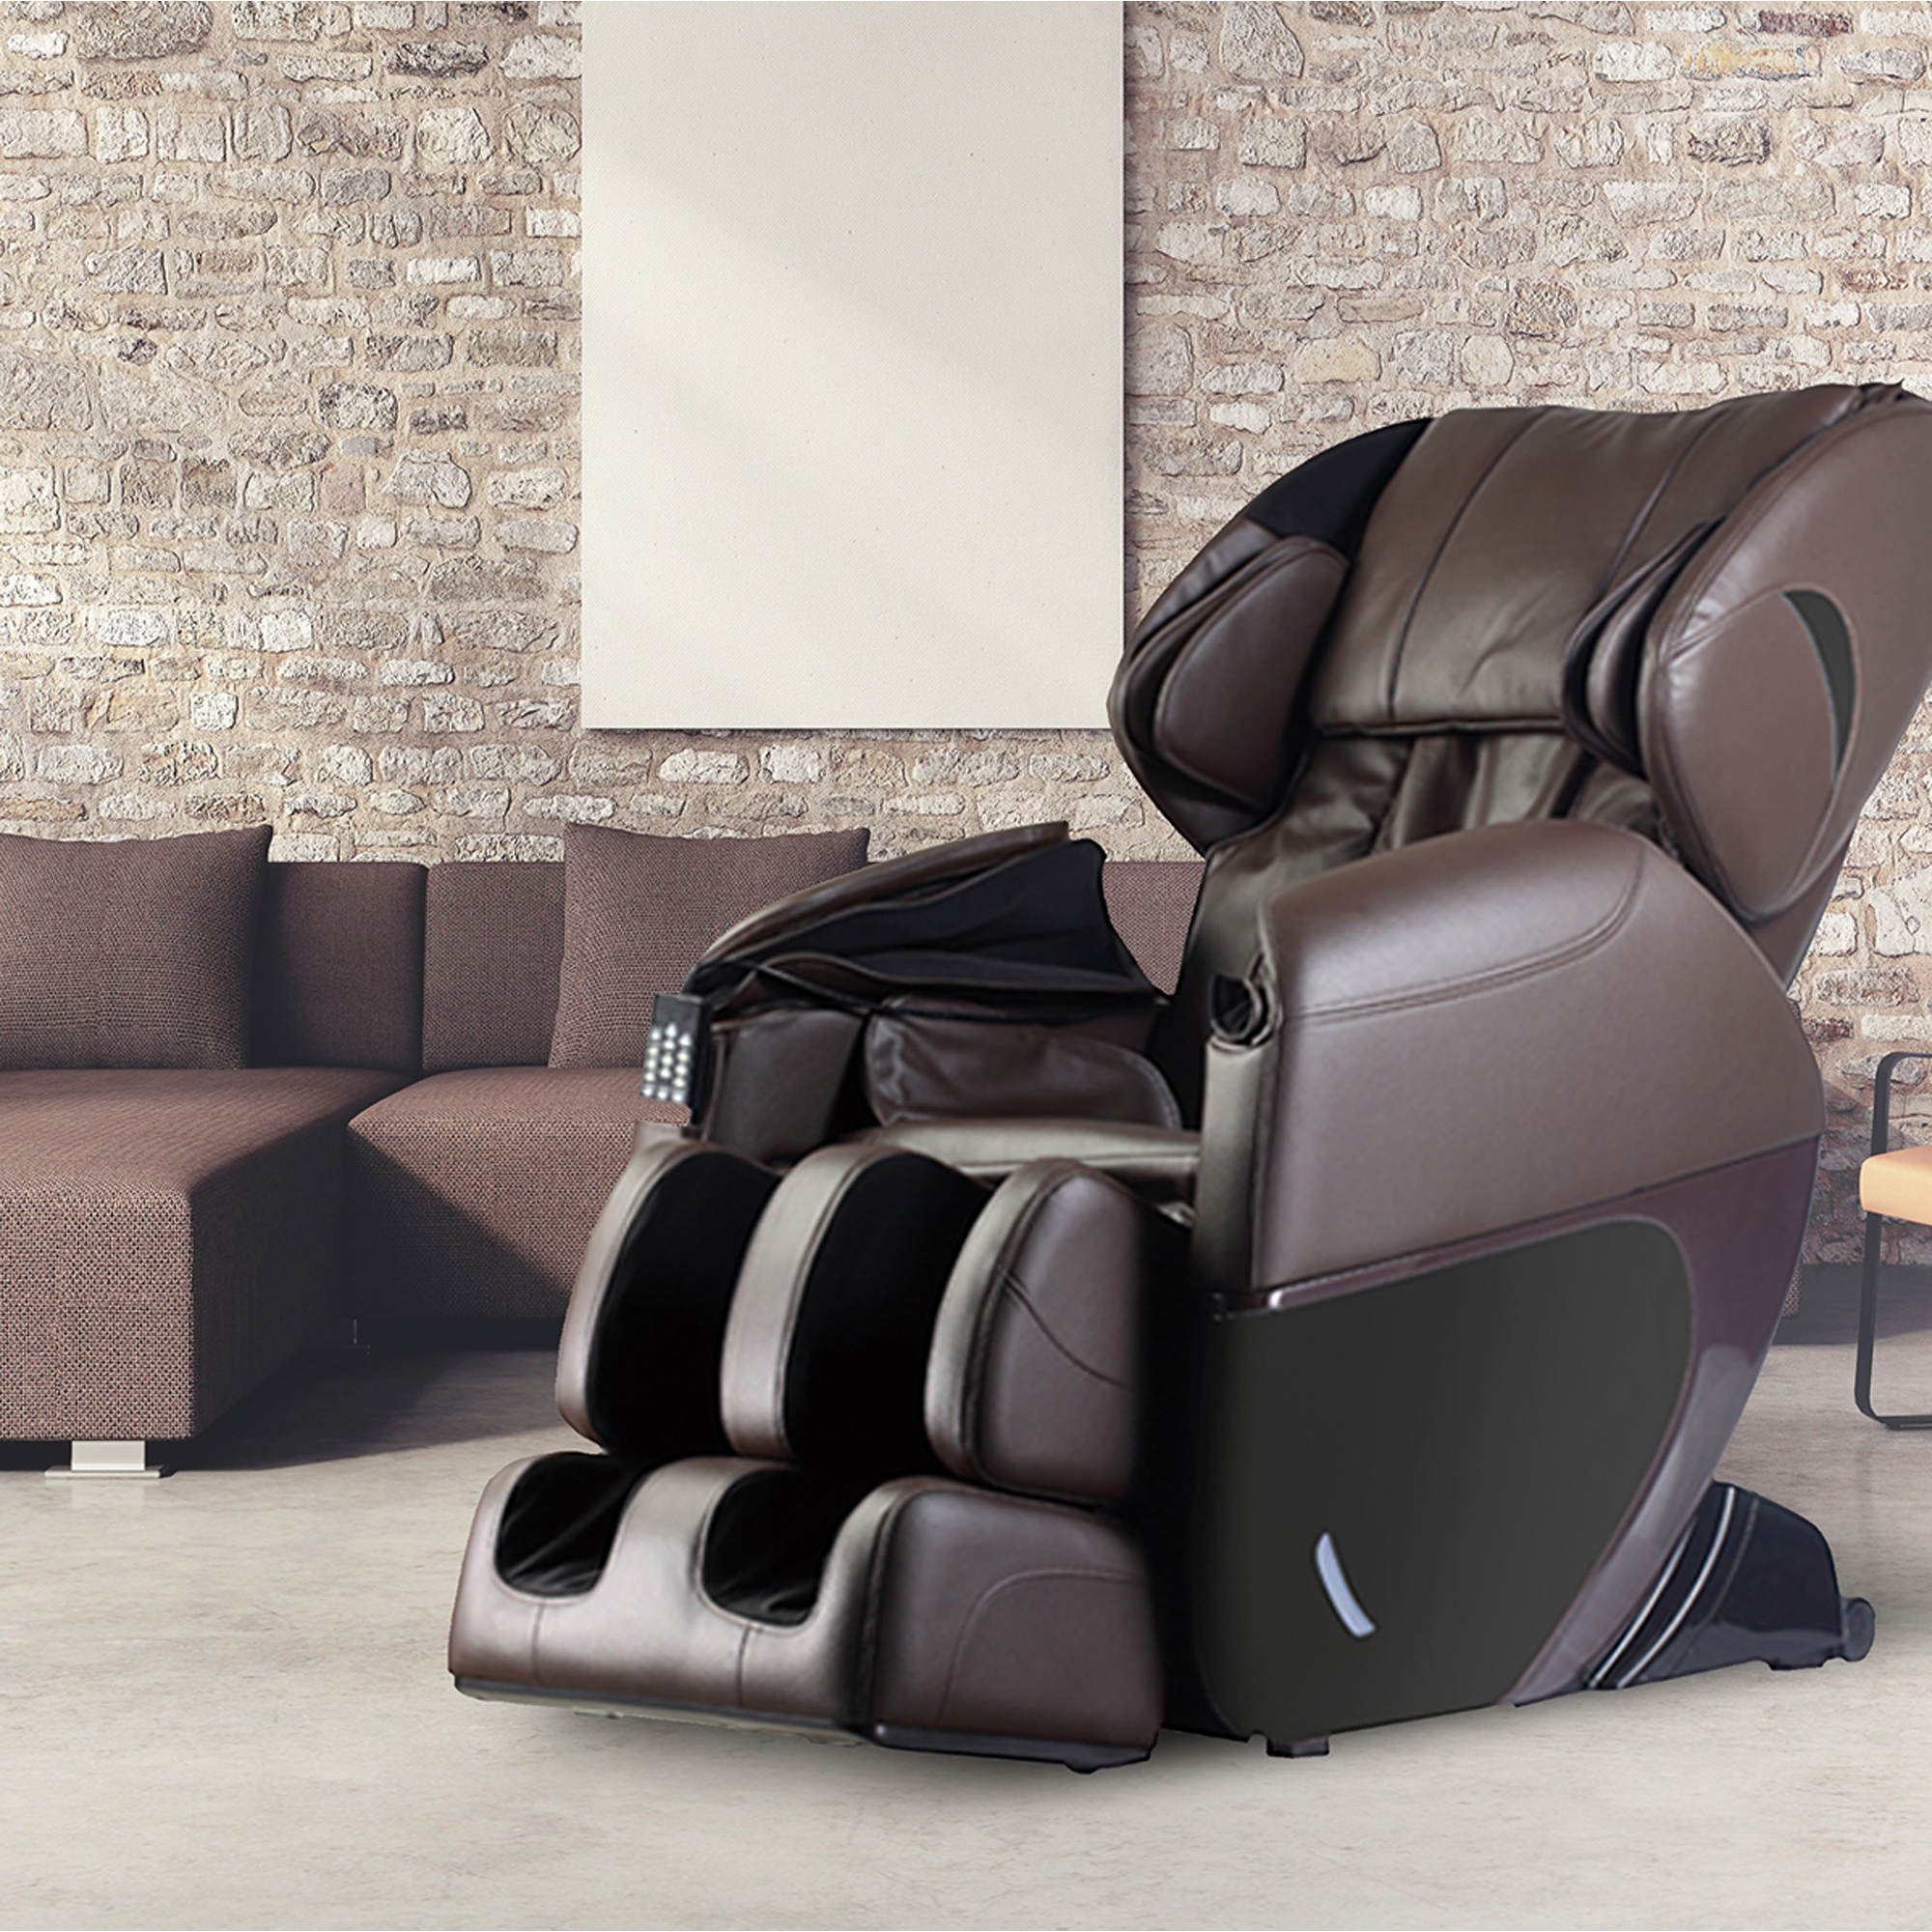 eSmart Therapeutic Total Body Massage Chair with 30 Airbags and 8 Back Massage Rollers